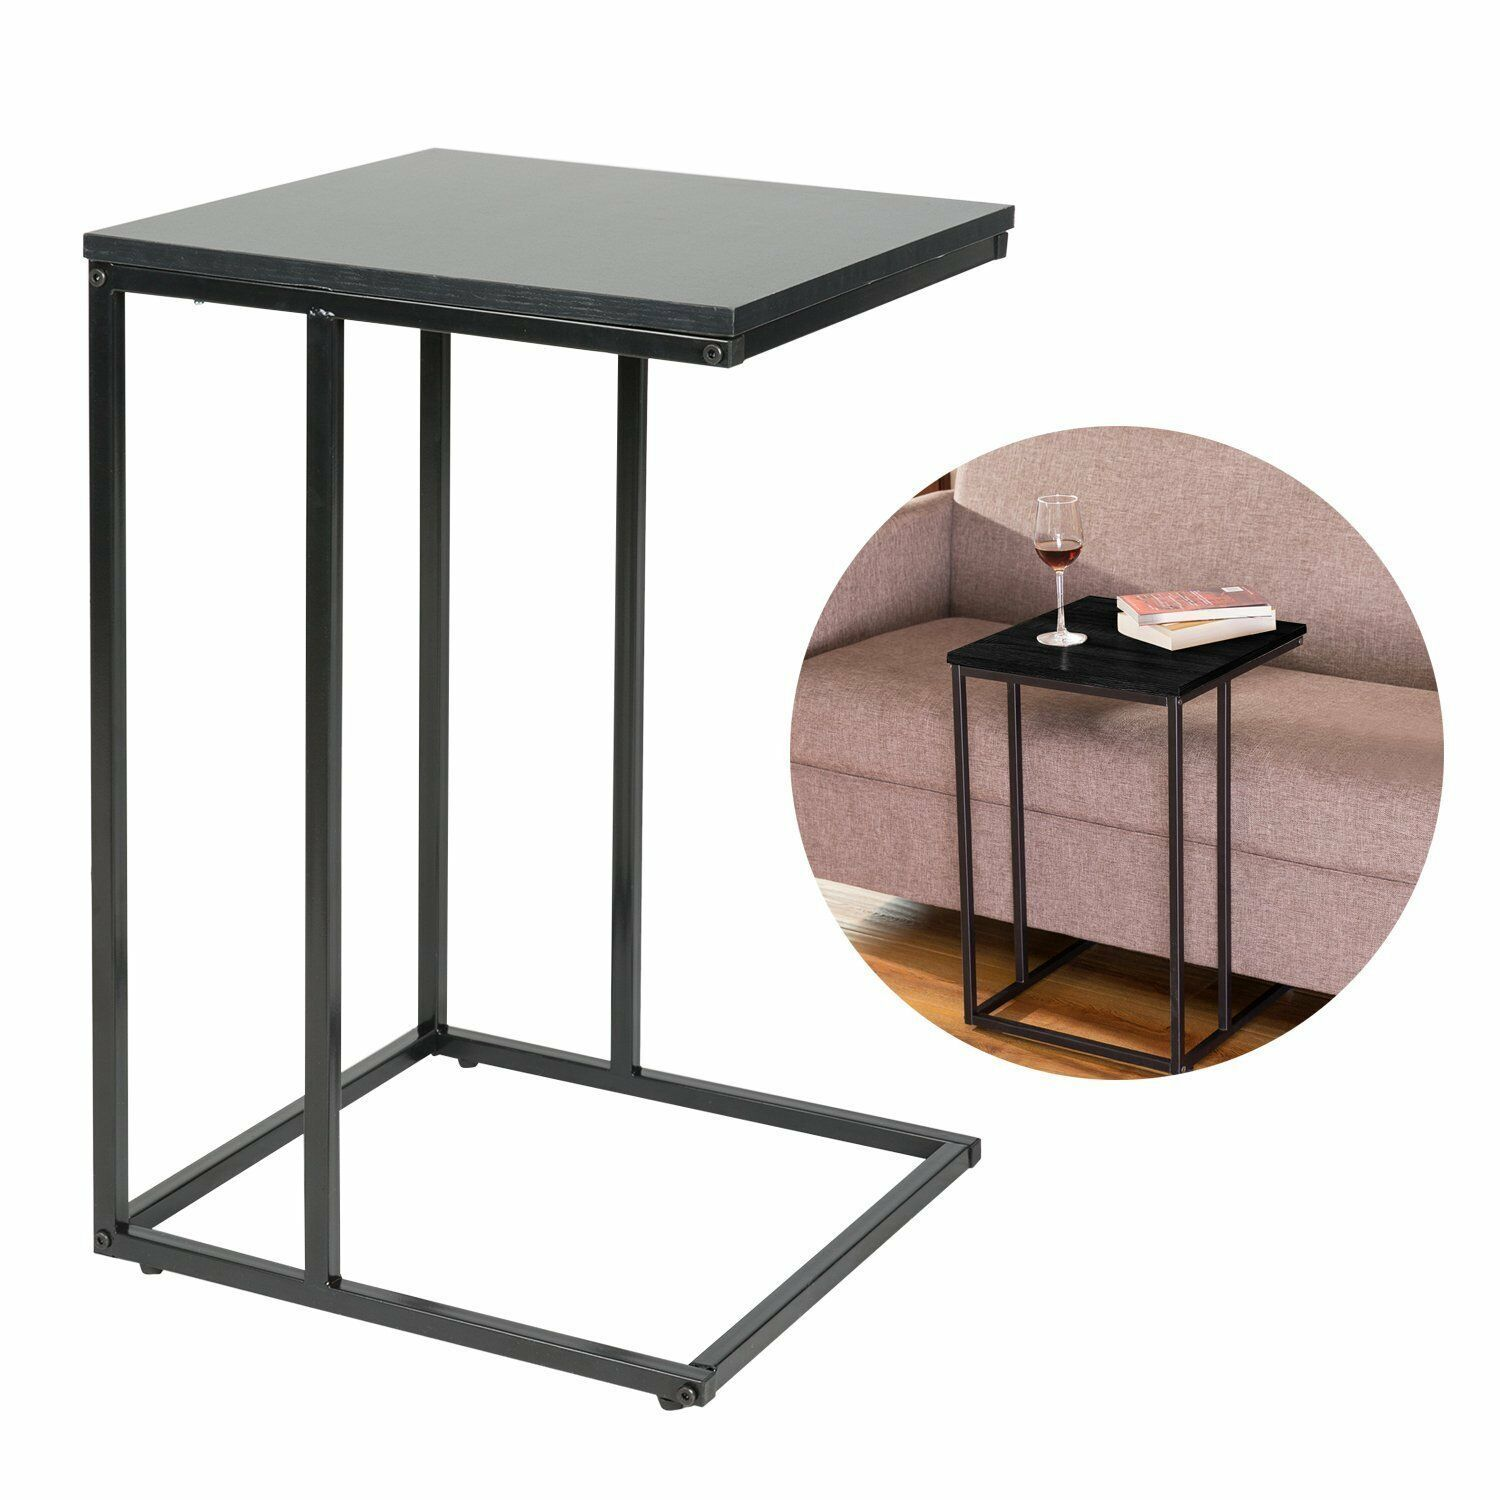 Slide Under Sofa Side Table With Wood Finish And Steel Construc New Sofa Table Ideas Of Sofa Table Sofa In 2020 Sofa Tables For Sale Sofa Side Table Couch Table